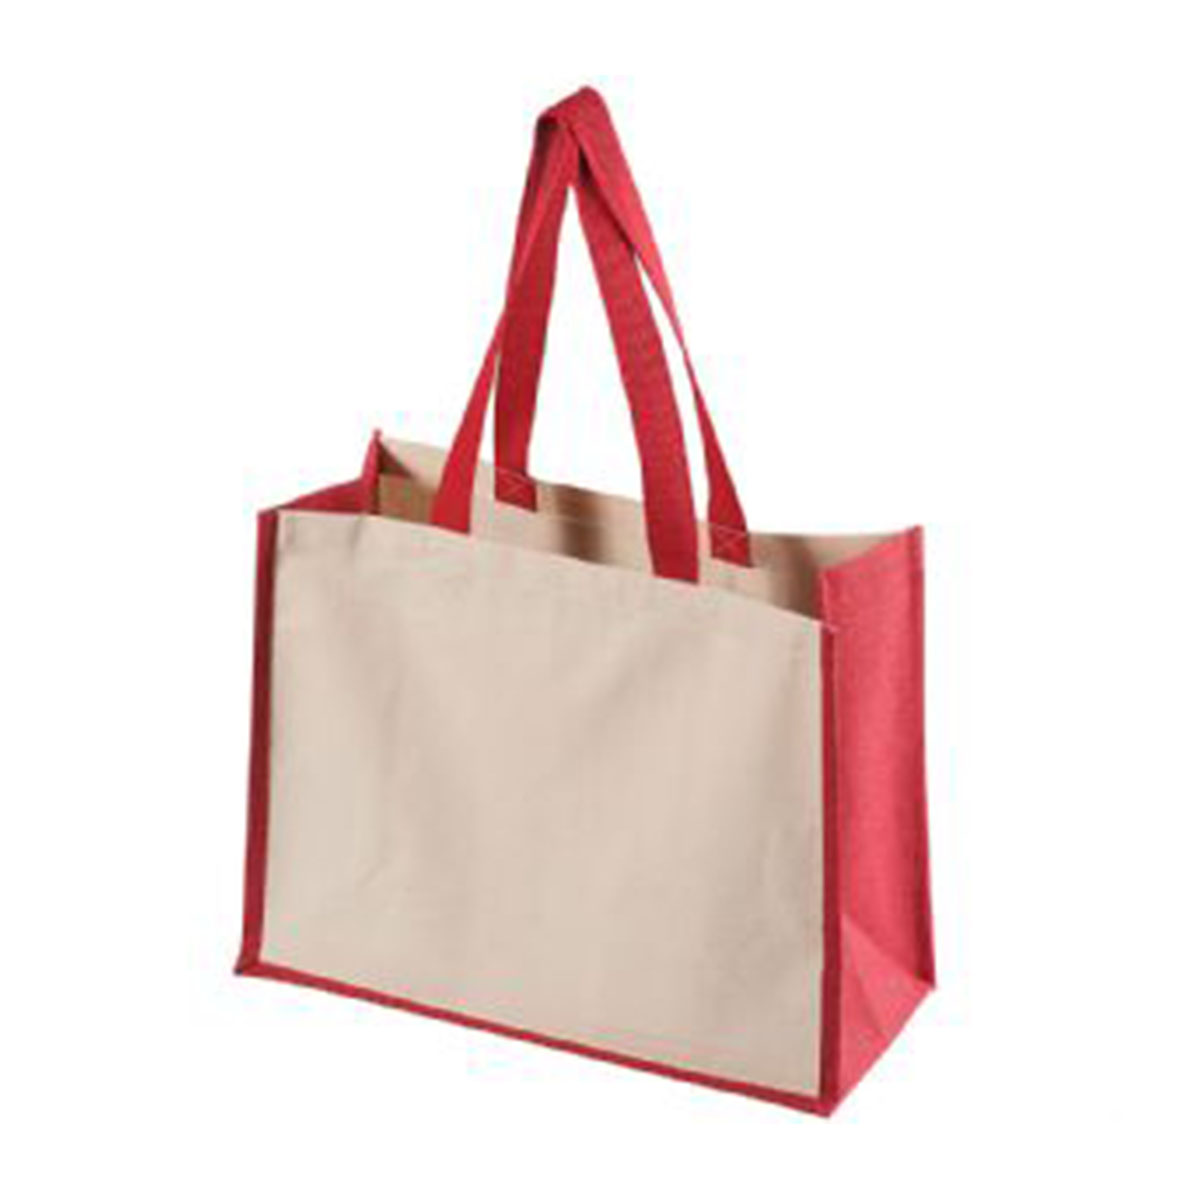 Functional Tote Bag-Red/Natural